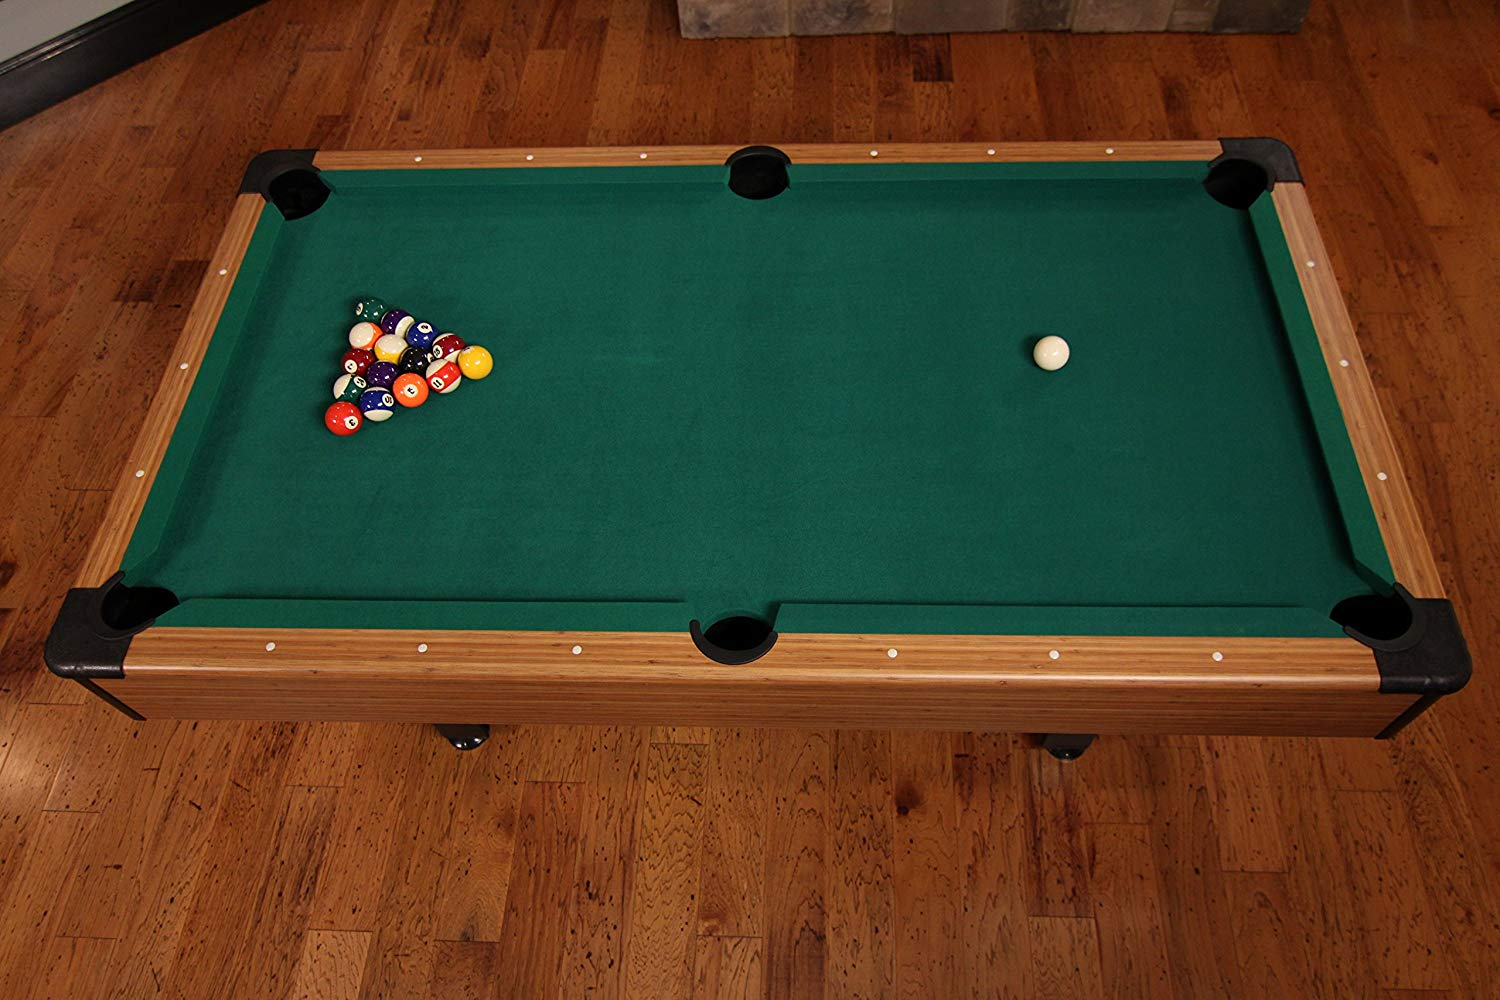 Adorable PoOl table Broads of various Dimensions and Sizes